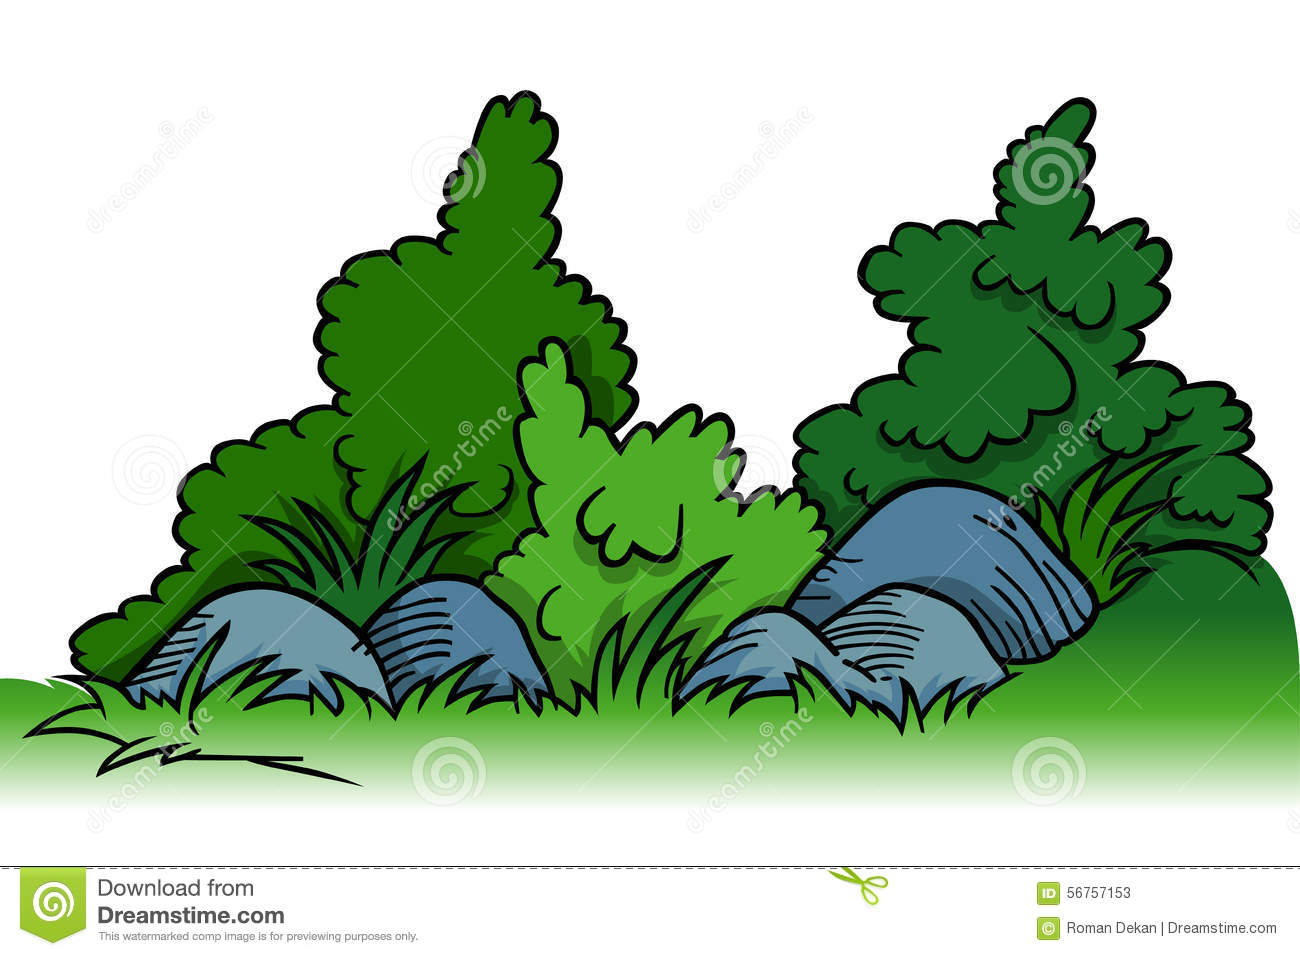 Shrubs With Rocks Cartoon Background Element Vector Illustration